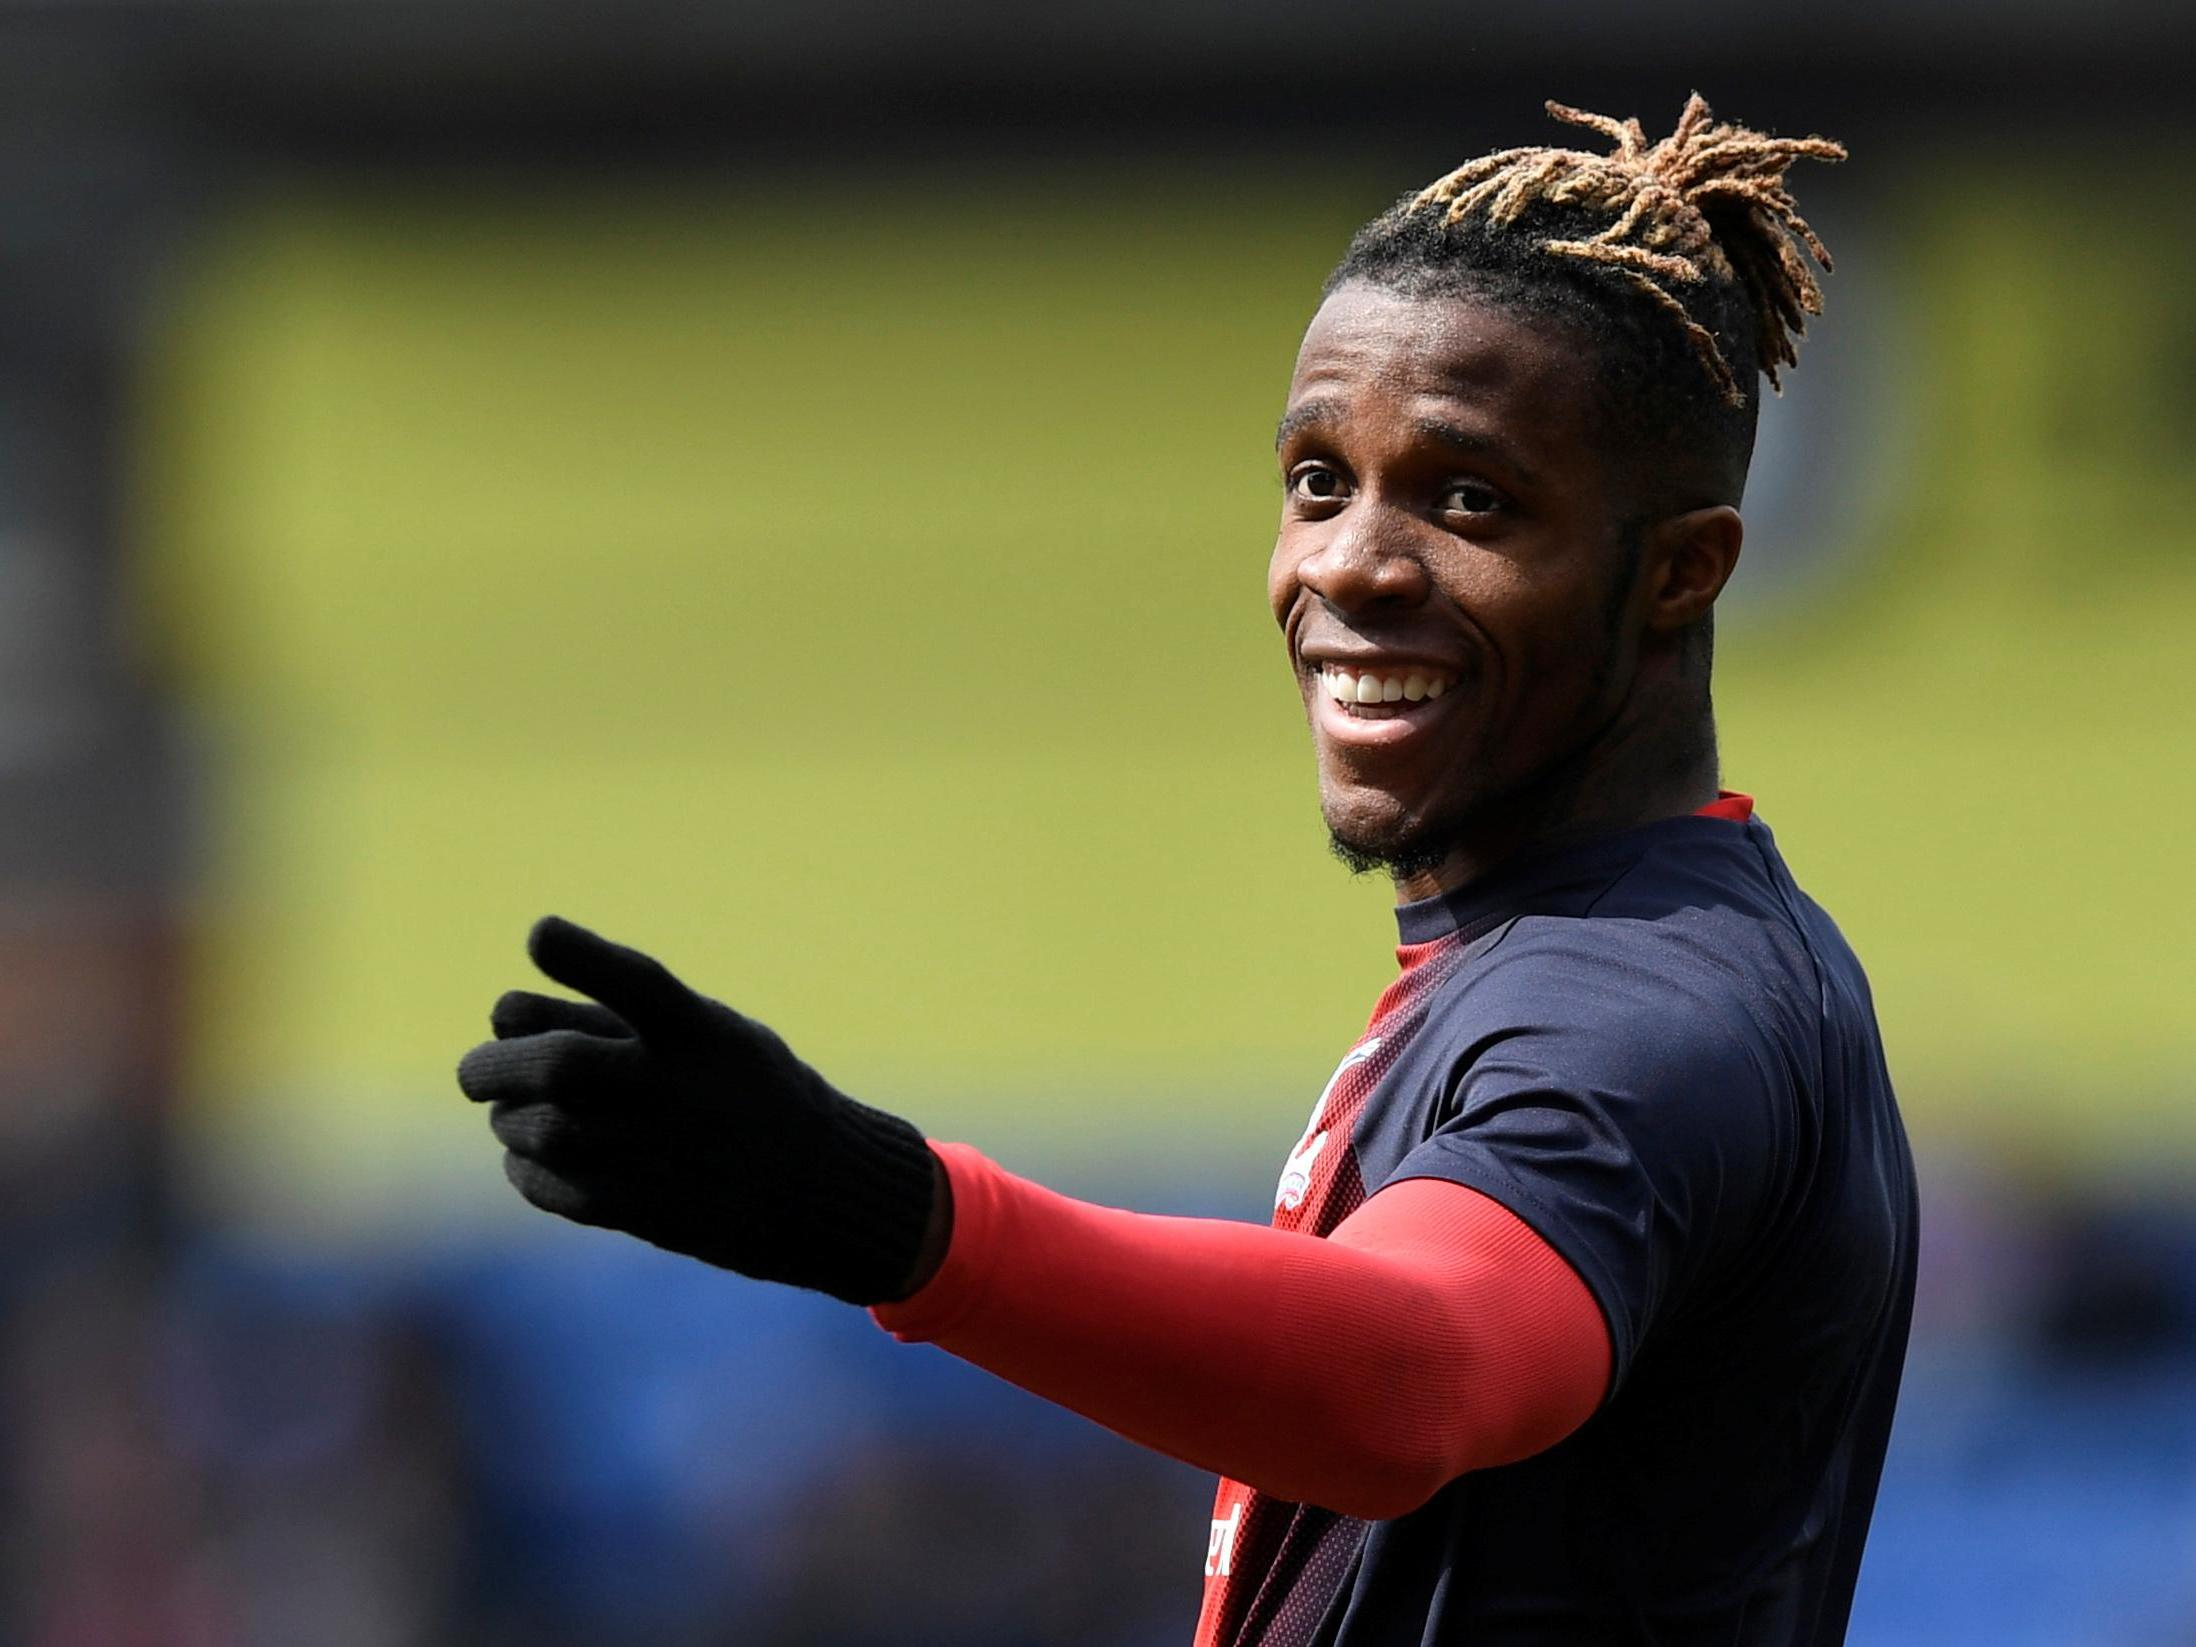 Wilfried Zaha transfer news: Arsenal up offer as Crystal Palace remain resolute over £80m valuation